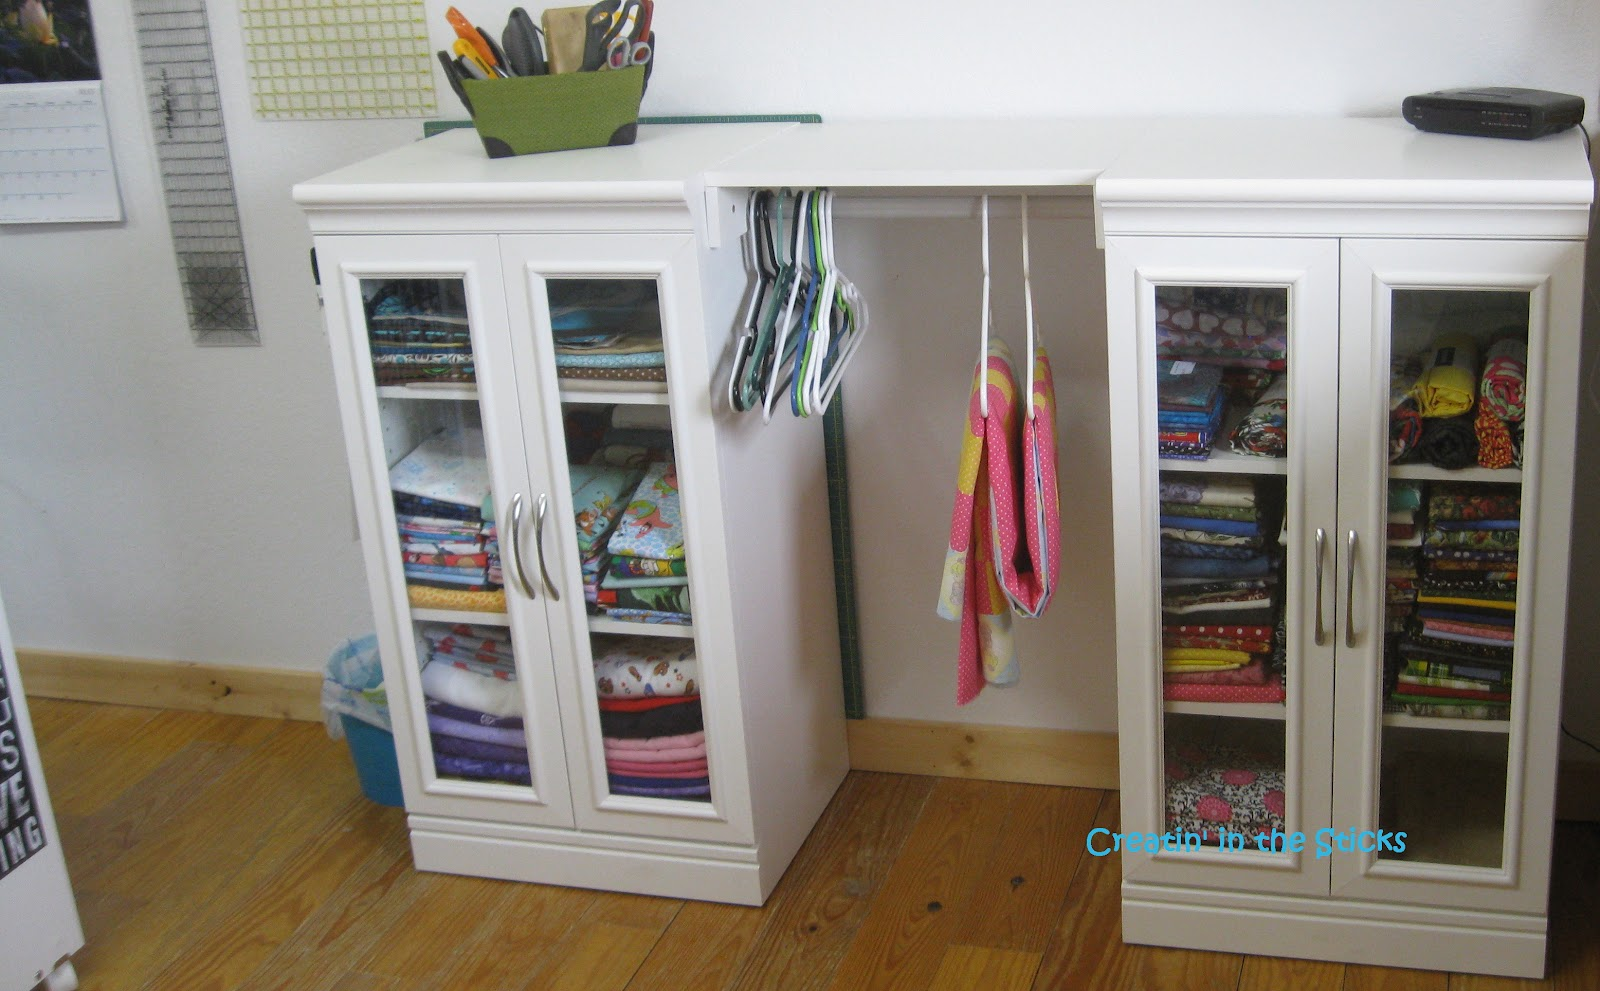 Creatin' in the Sticks: Sewing Room